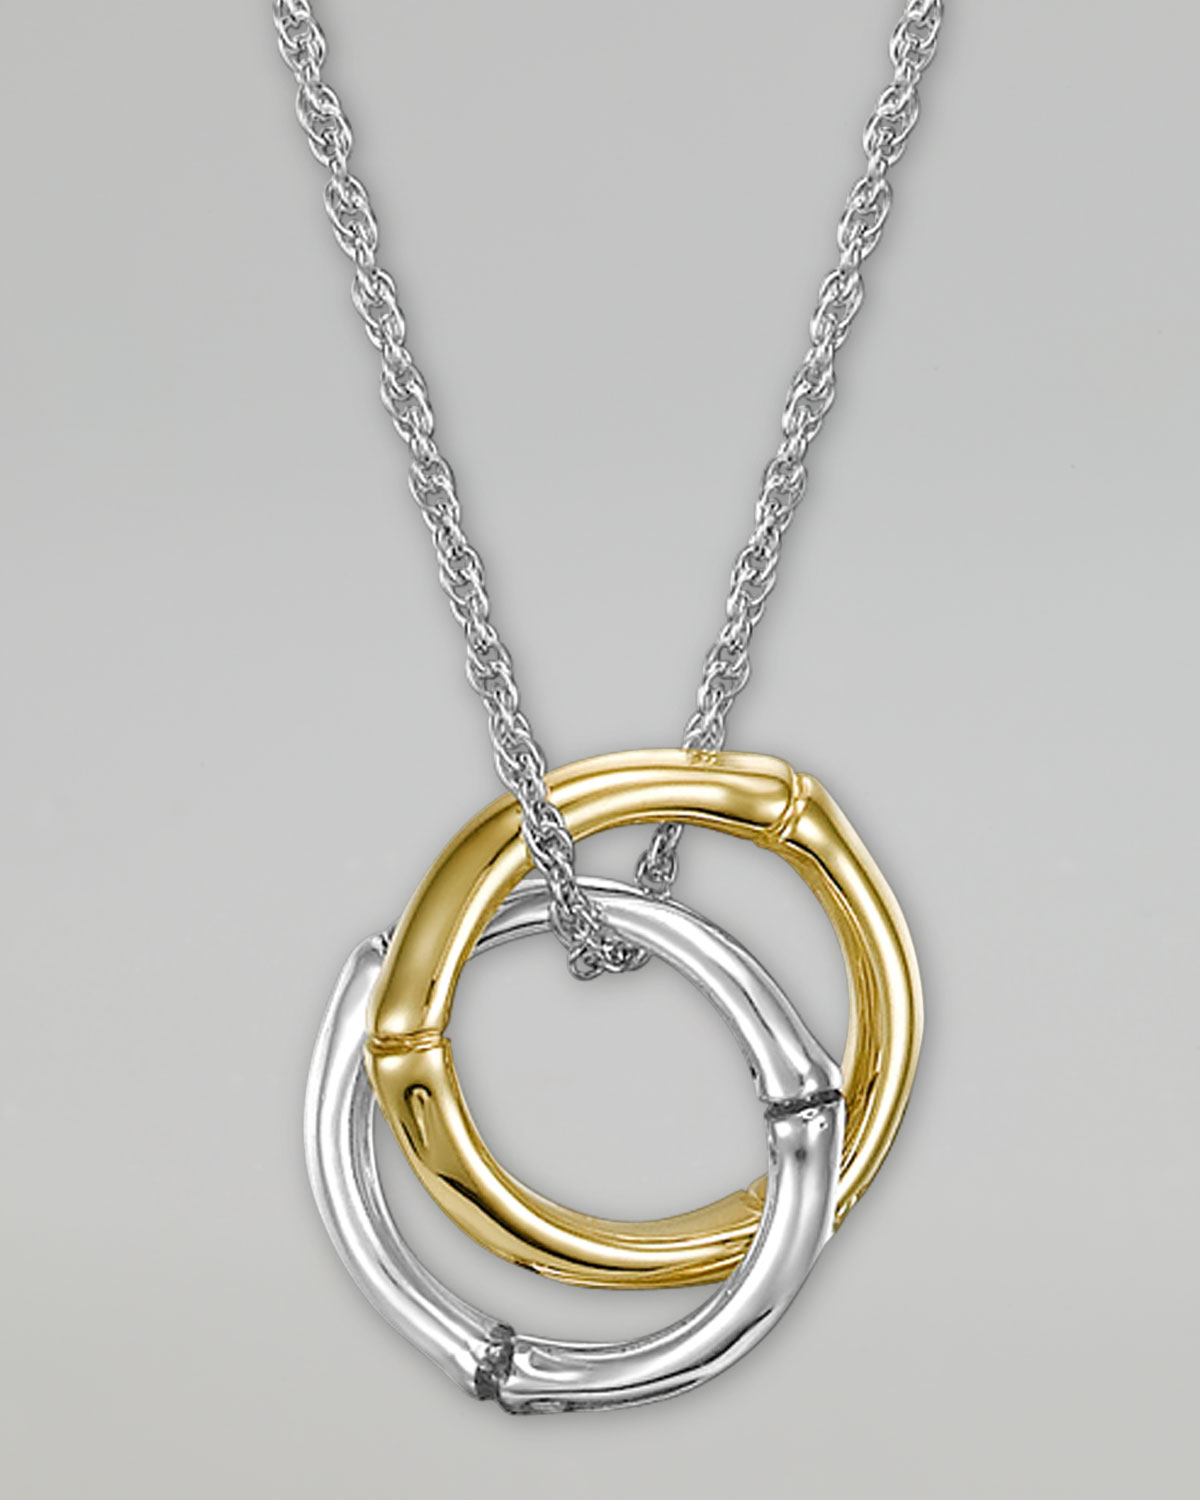 Brand new Lyst - John Hardy Bamboo Gold Silver Small Round Pendant Necklace  QD95